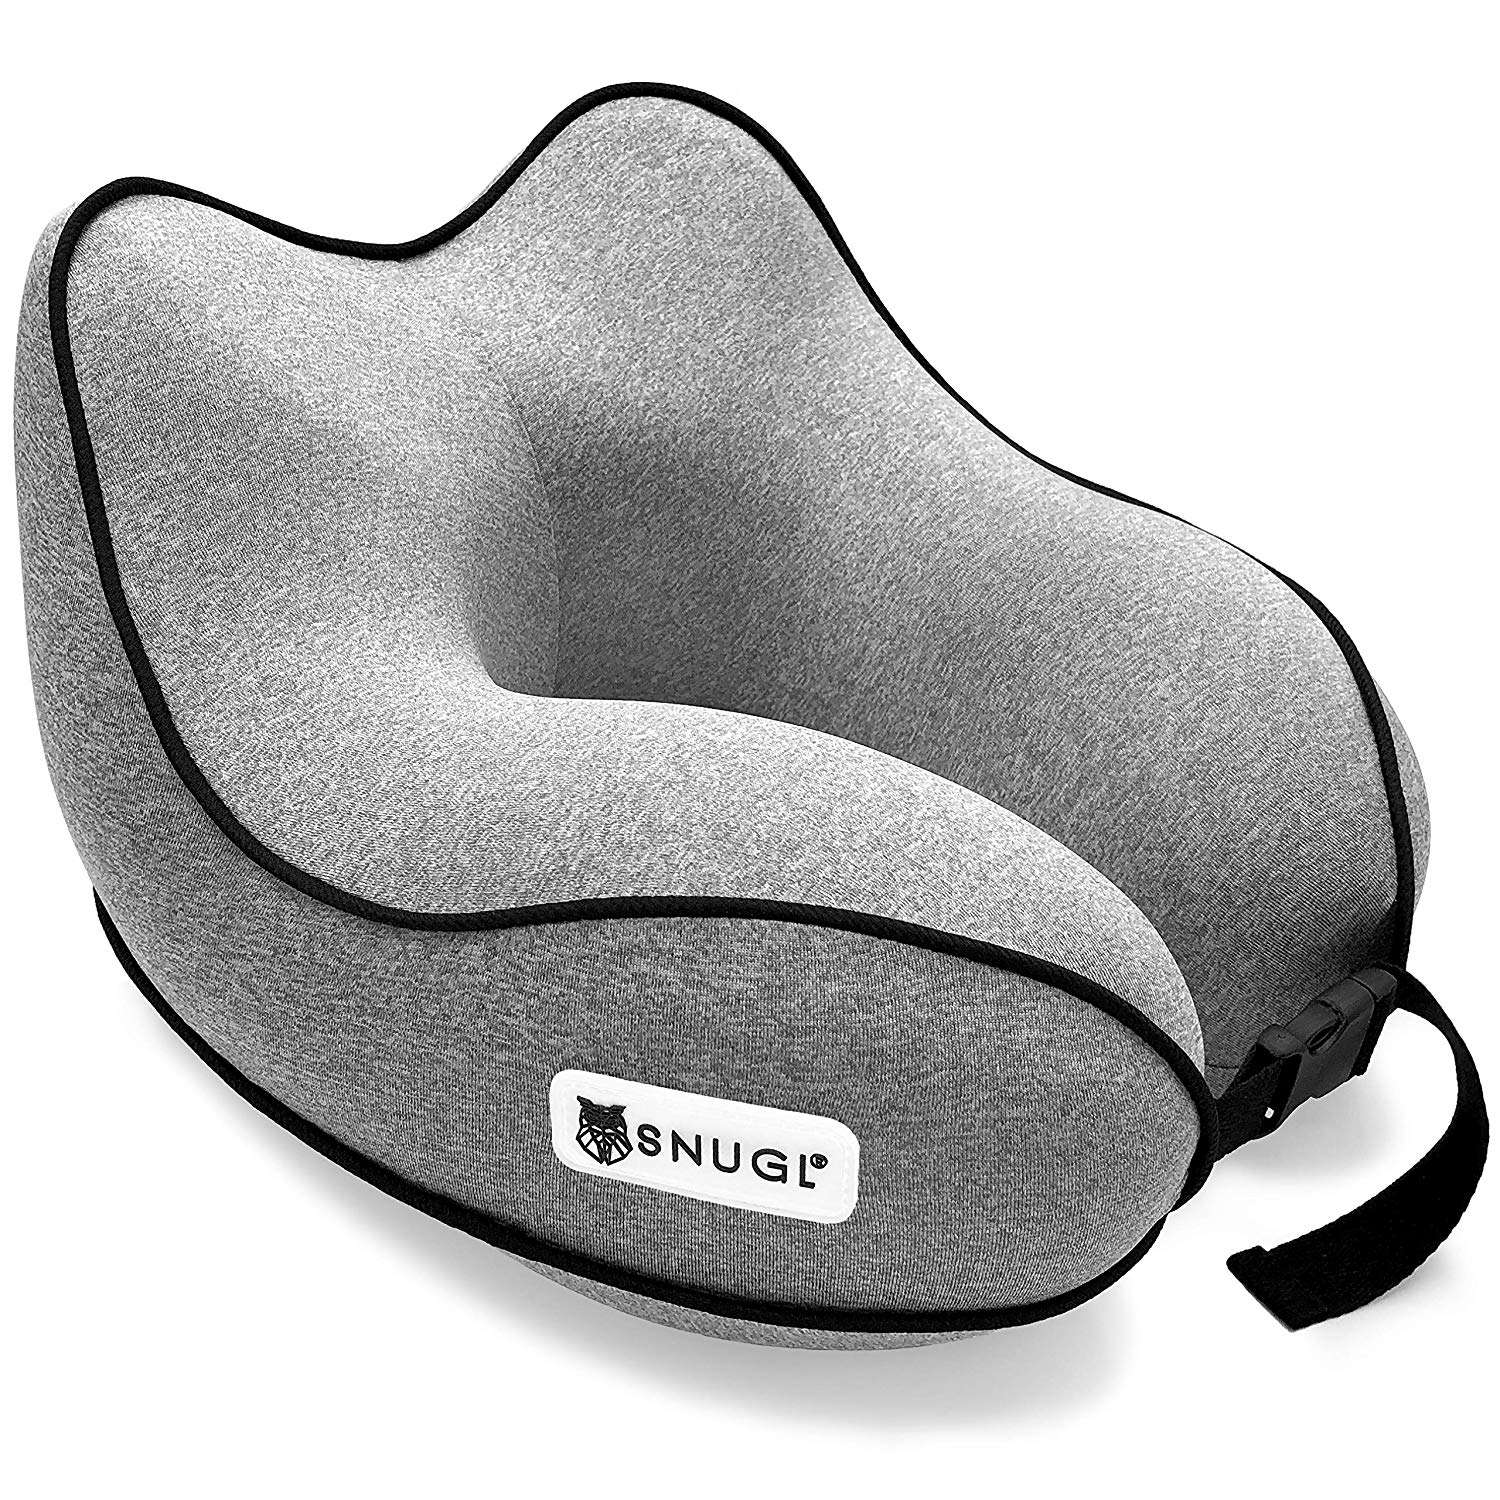 best neck pillow for wear and tear